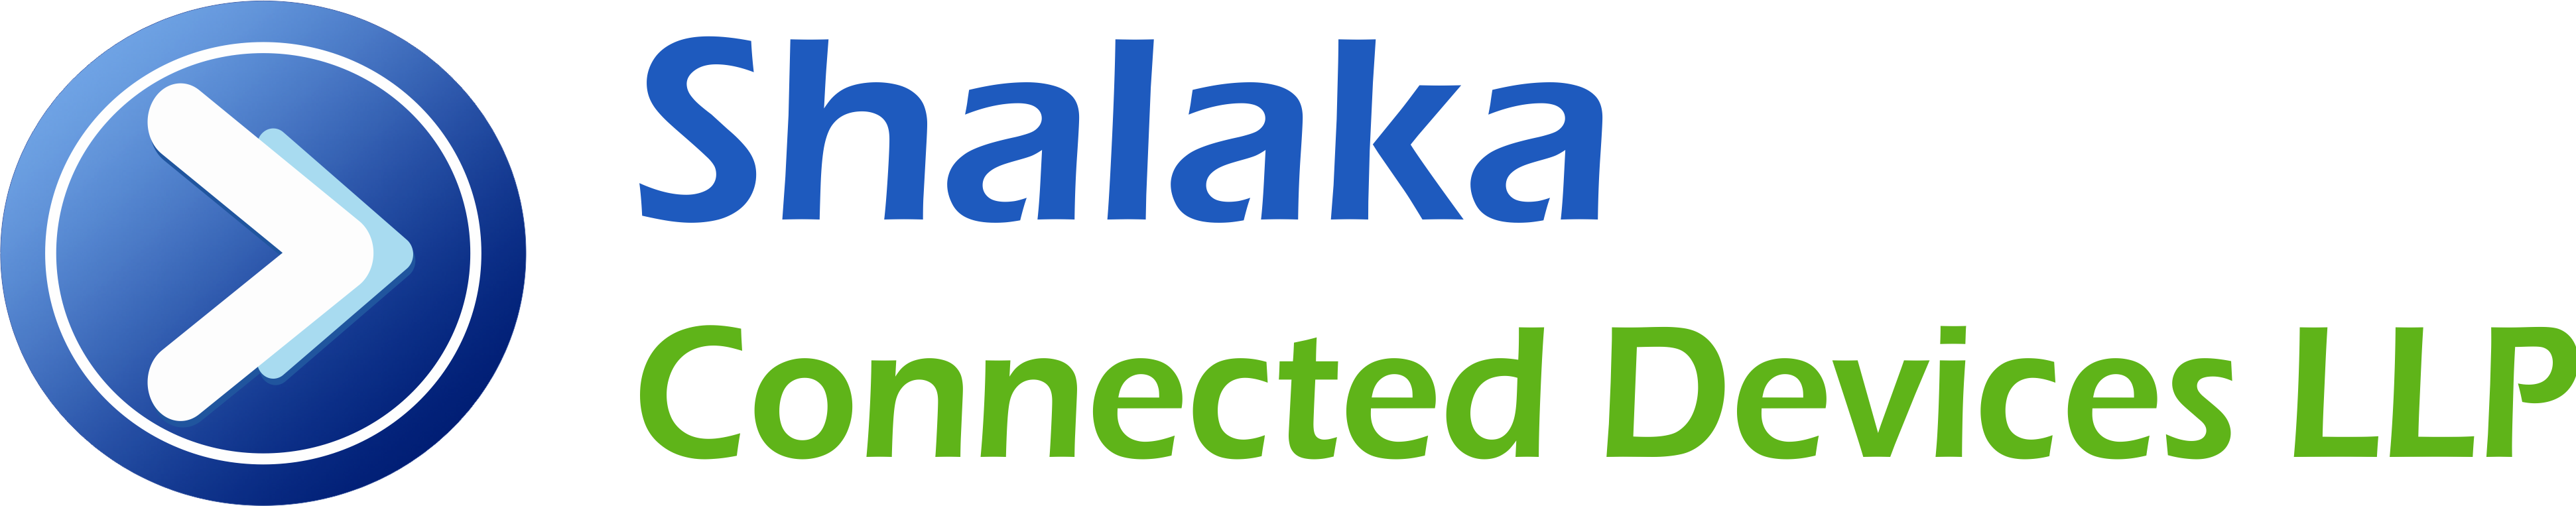 Shalaka Connected Devices